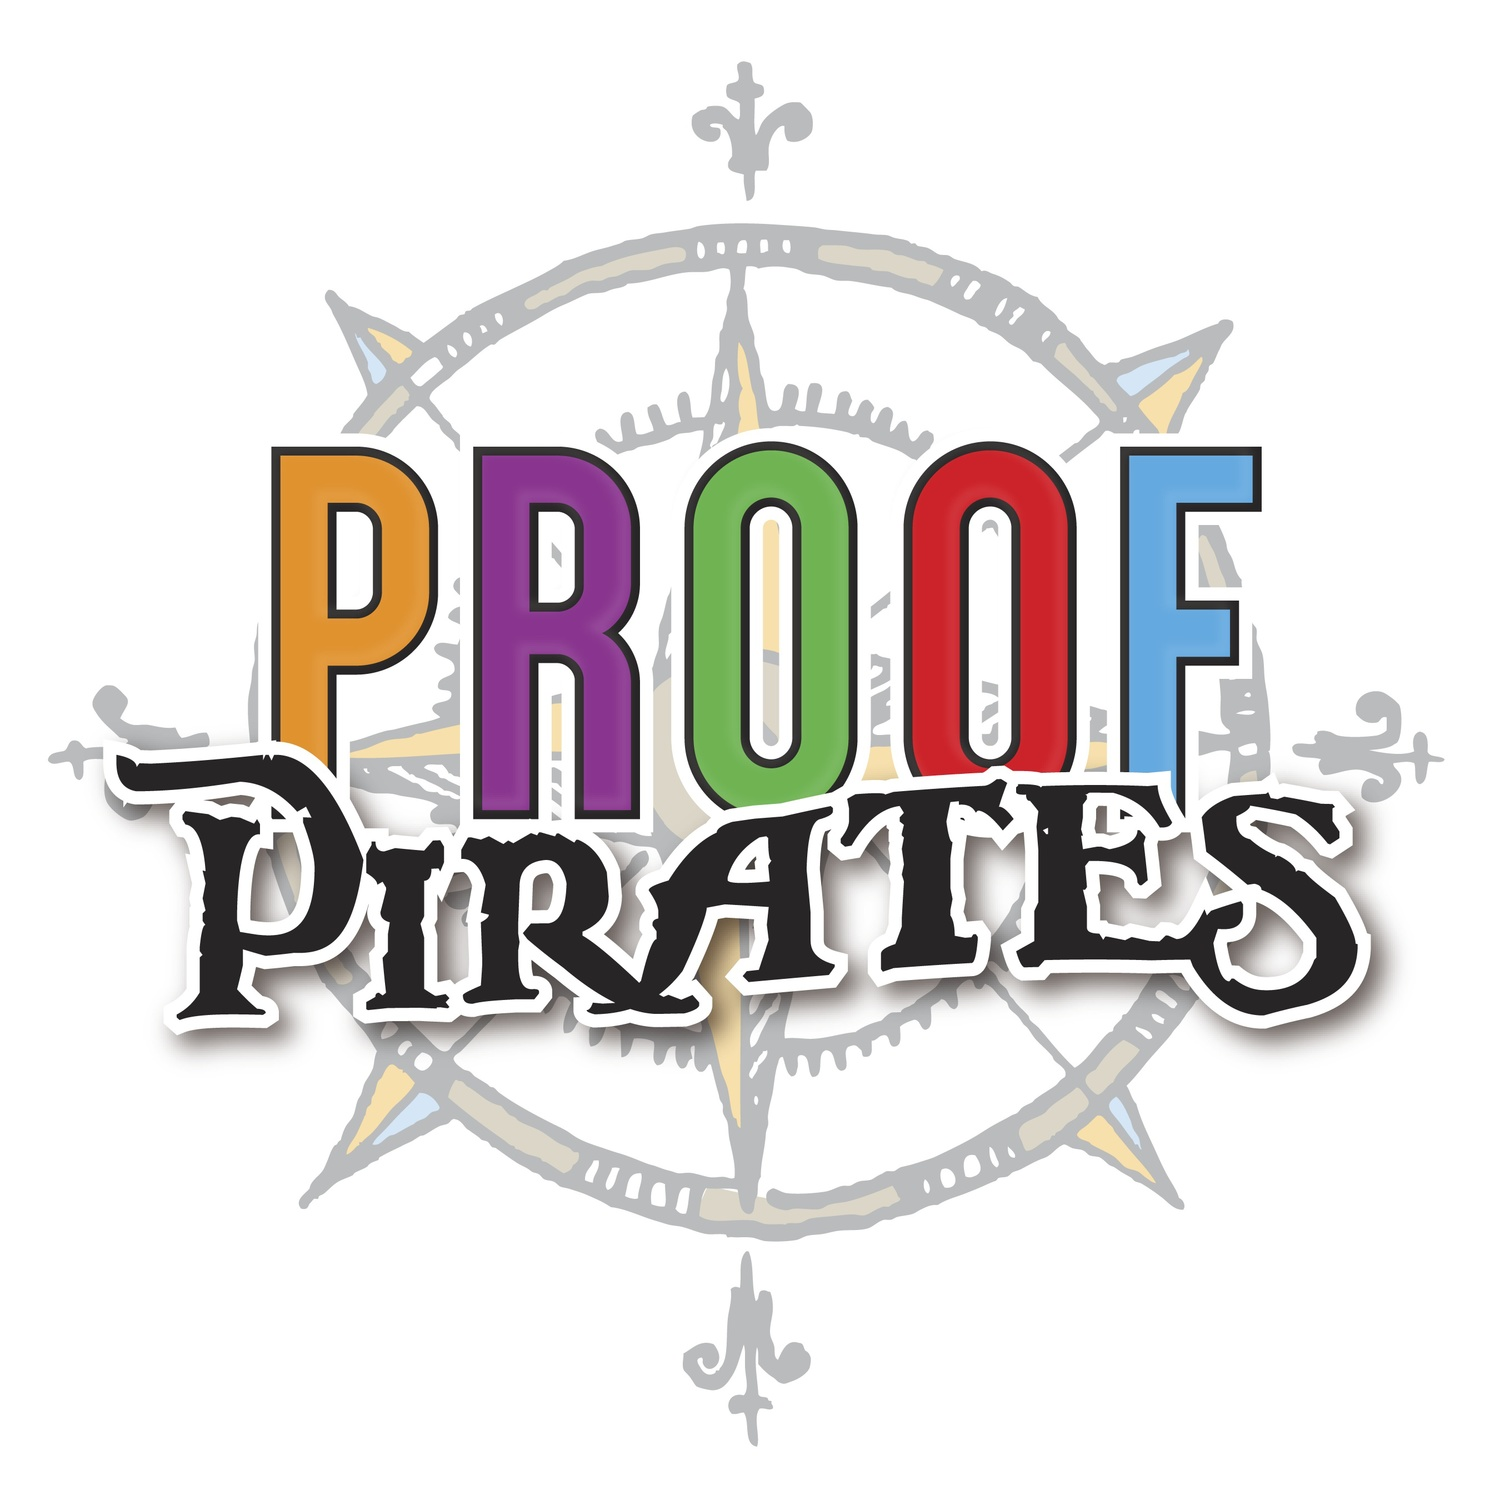 Proof Pirates Logo.jpeg